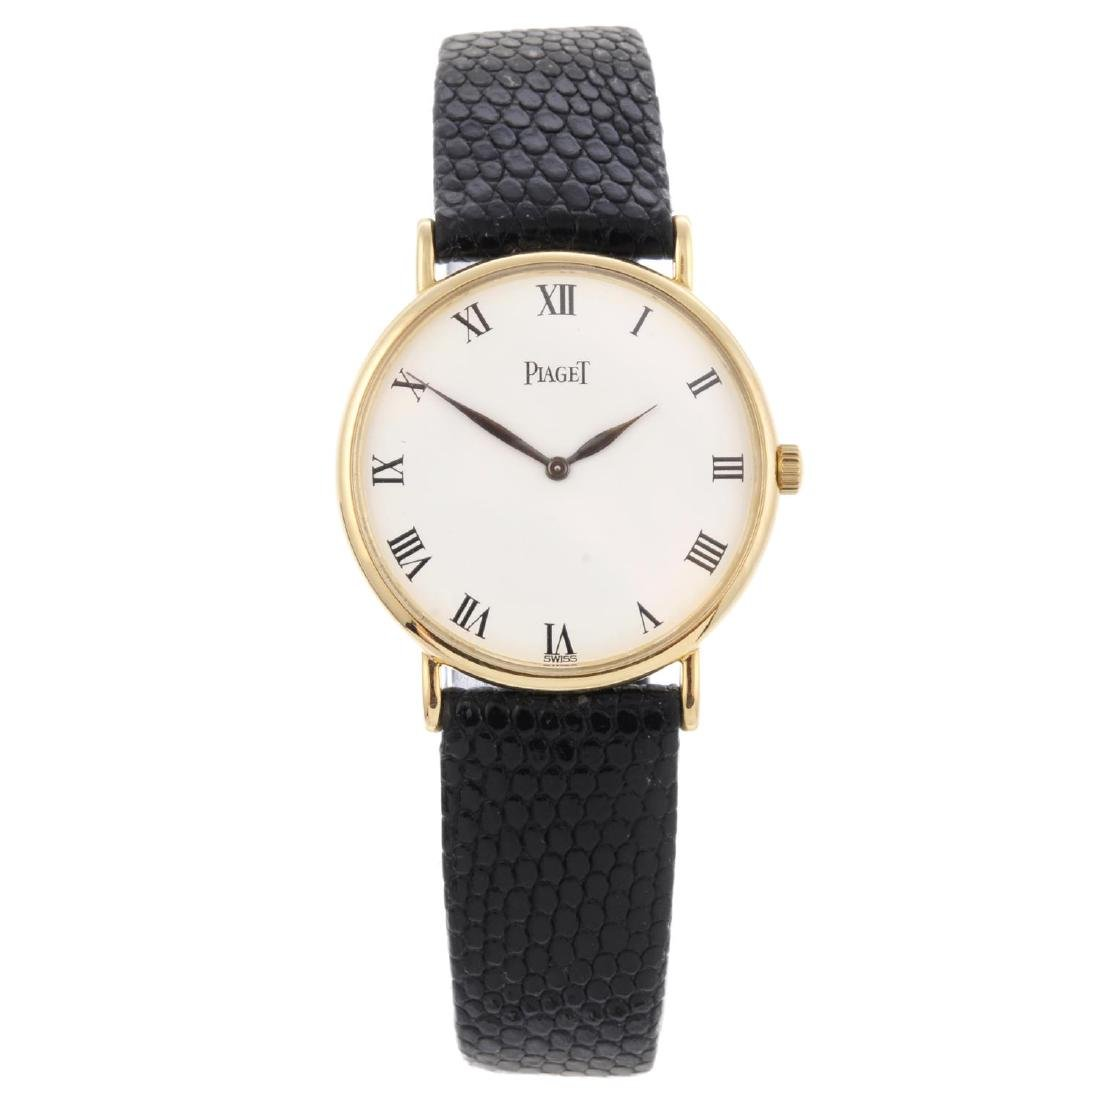 PIAGET - a mid-size wrist watch. Yellow metal case,